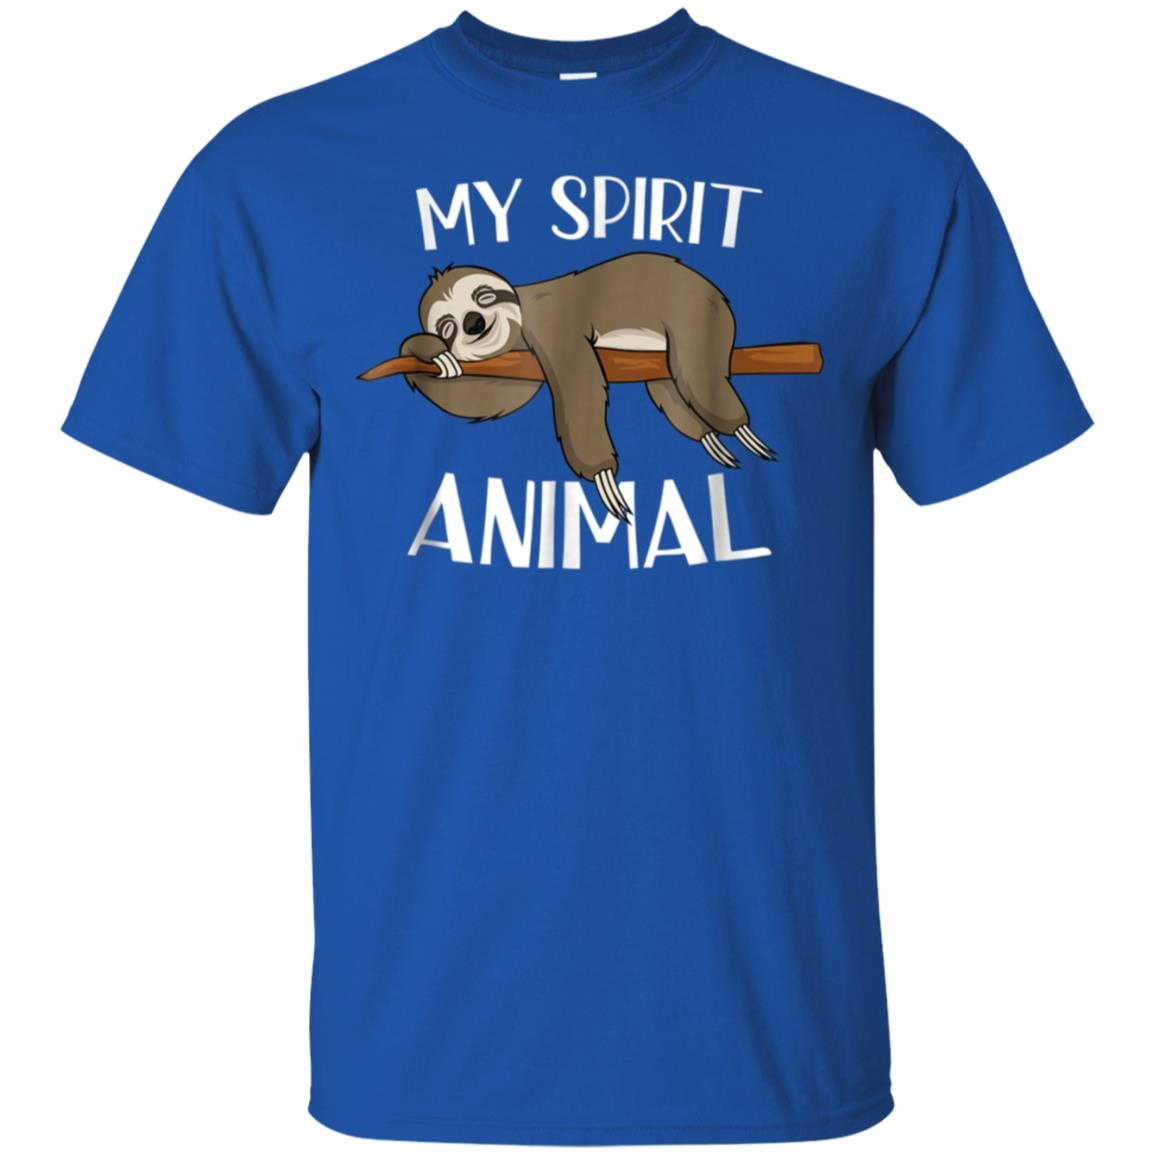 653cb26d7 Awesome my spirit animal funny sloth t shirt lazy napping gift tee ...